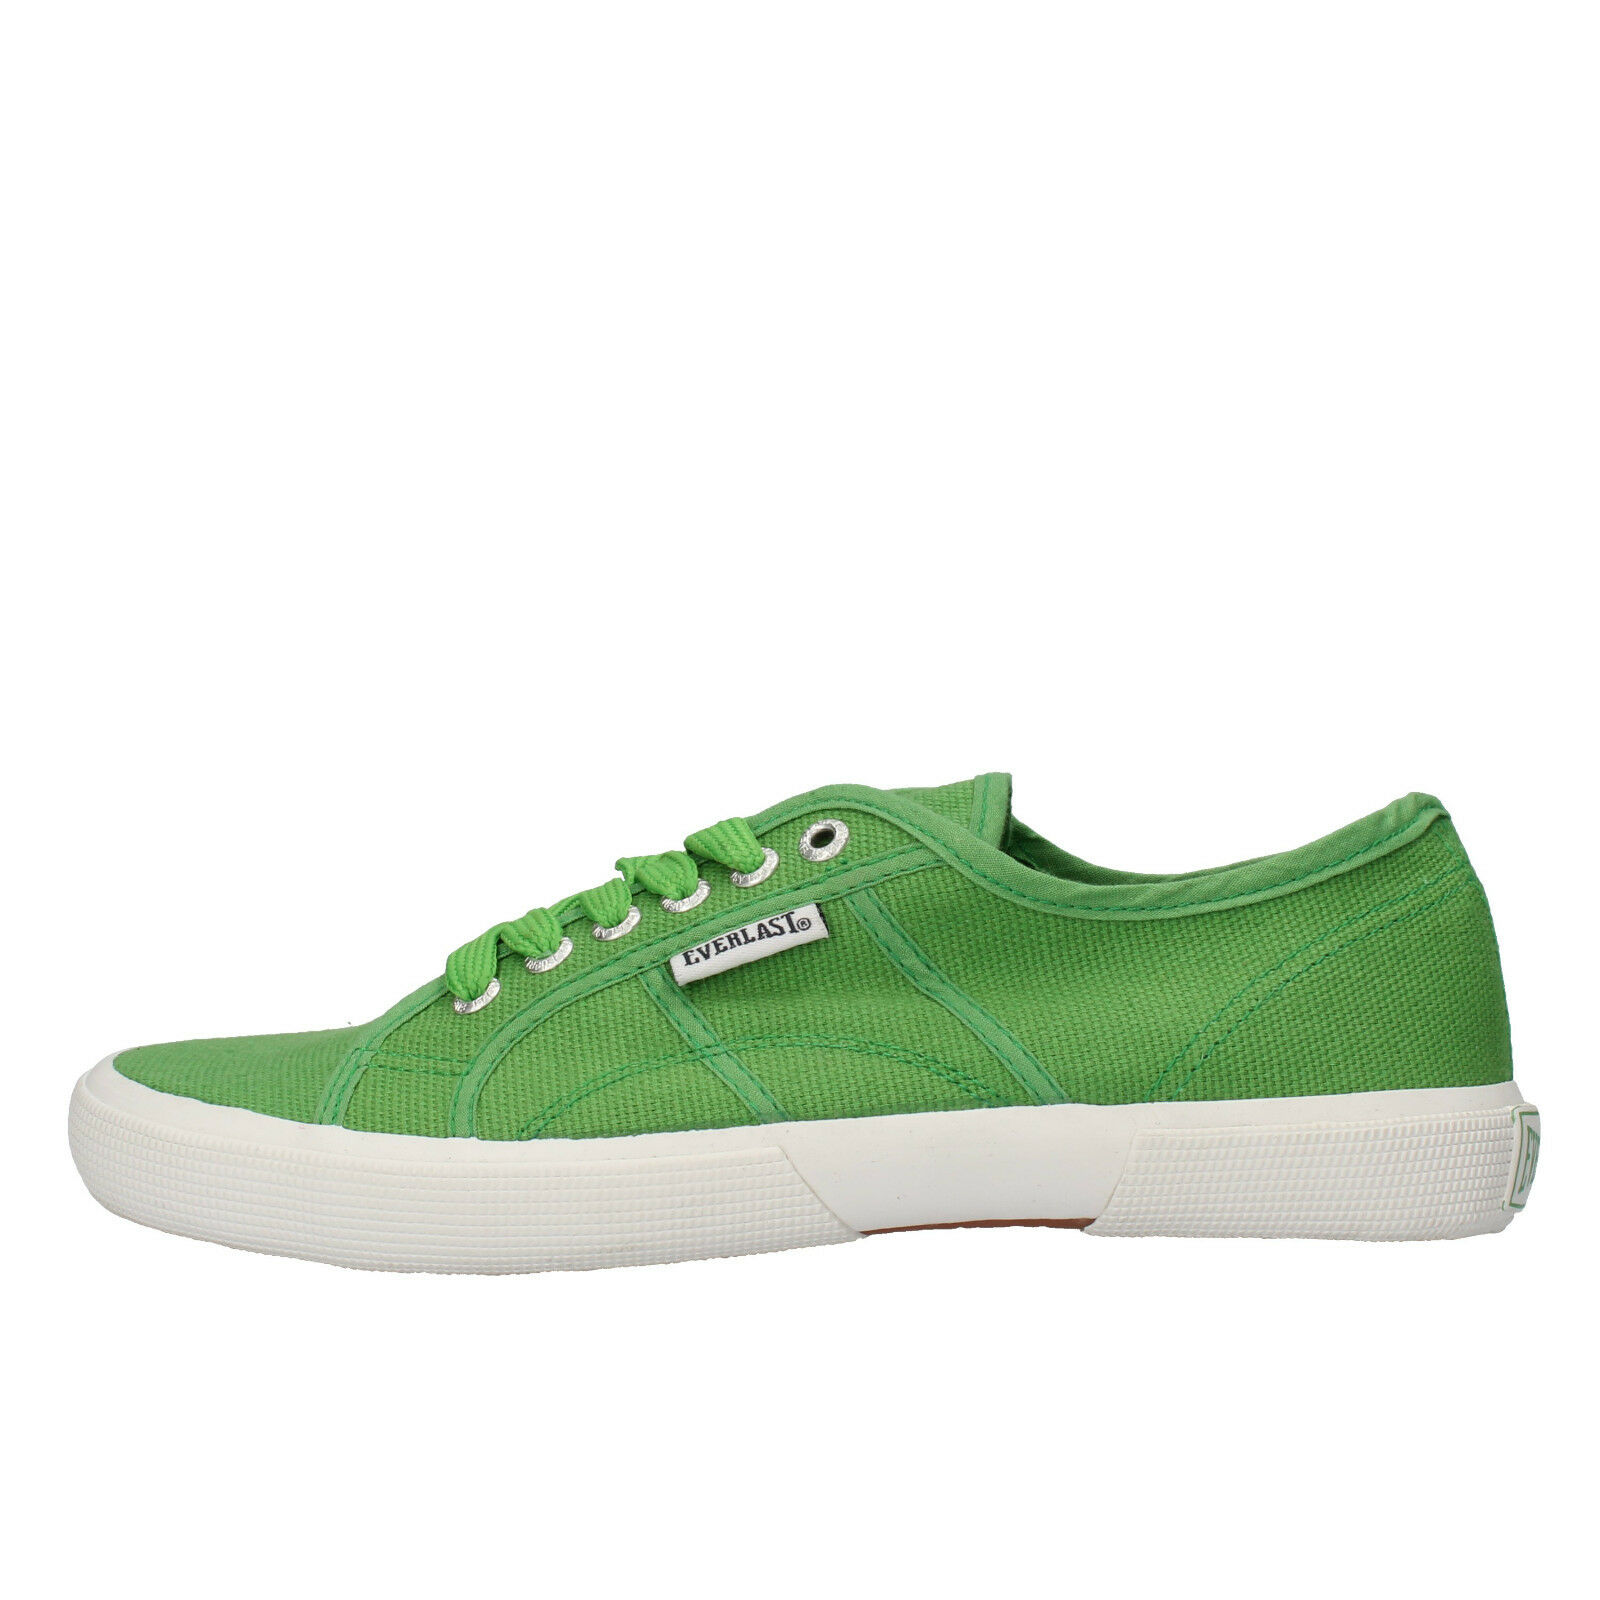 Men's shoes EVERLAST 6 () sneakers green canvas AF717-B